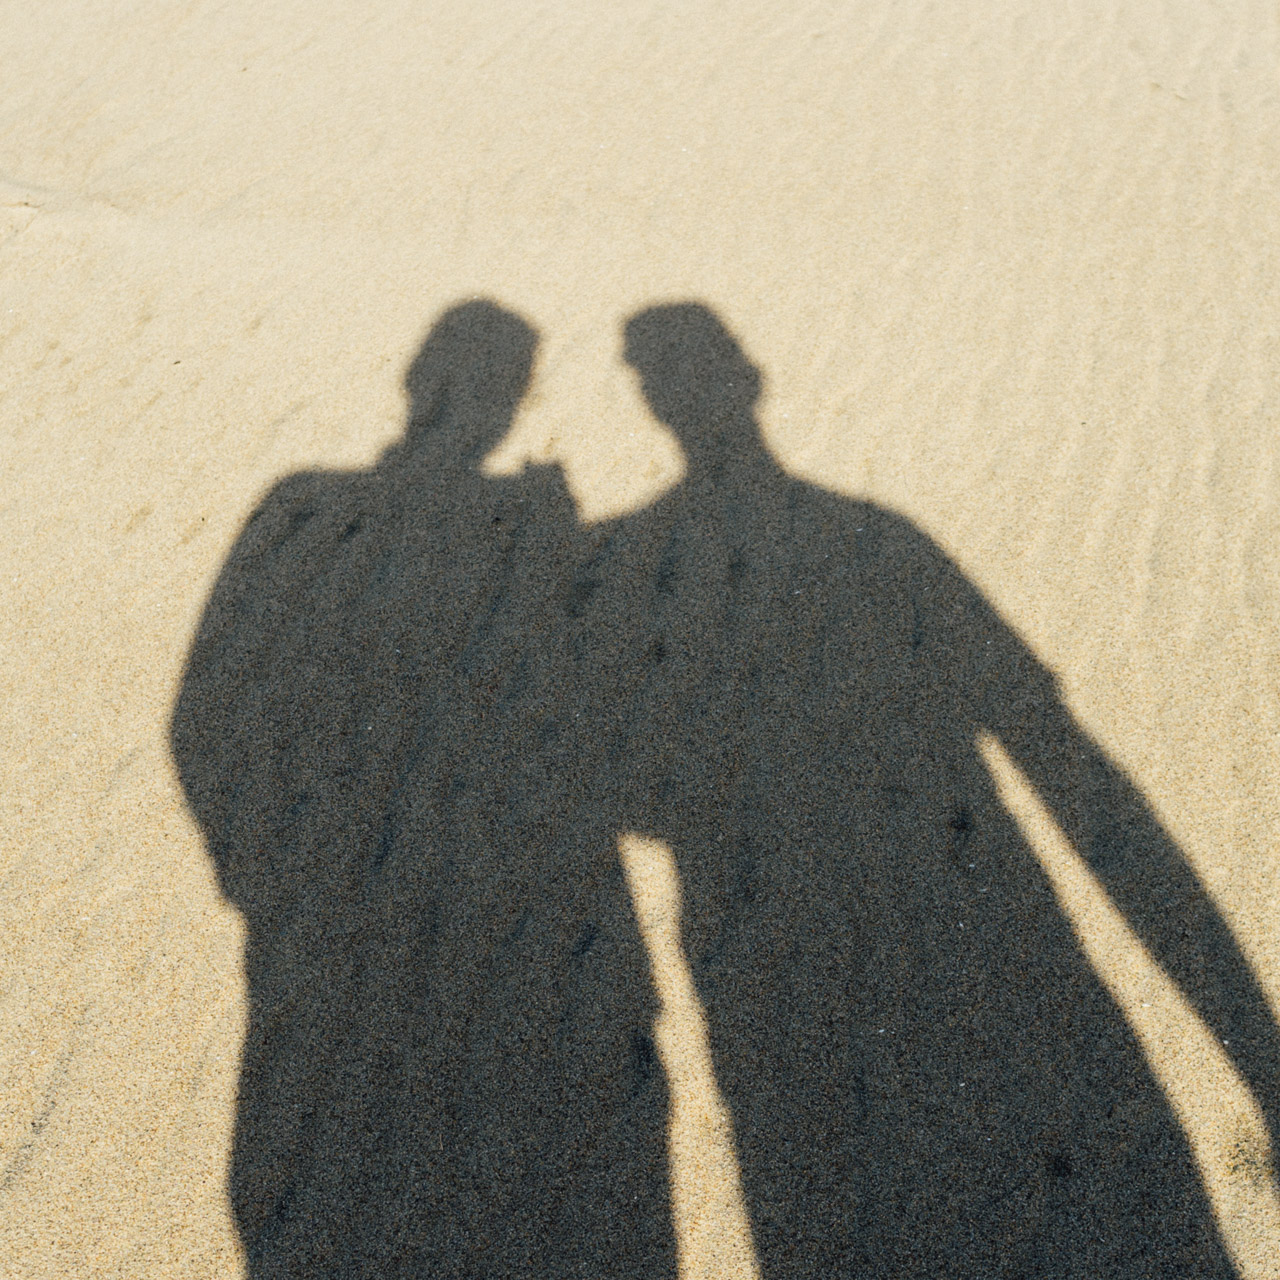 Shadow selfie ~ Photo taken on Fuji x100